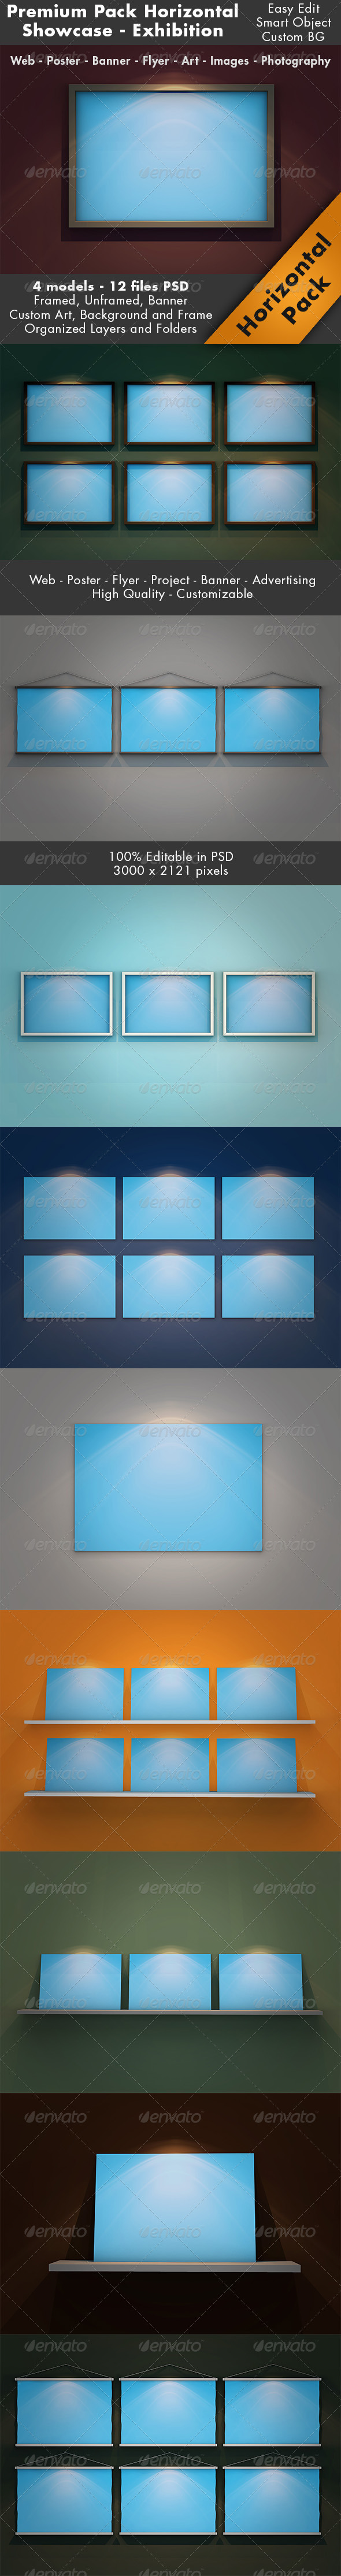 GraphicRiver Horizontal Showcase Mockup Pack 7099091